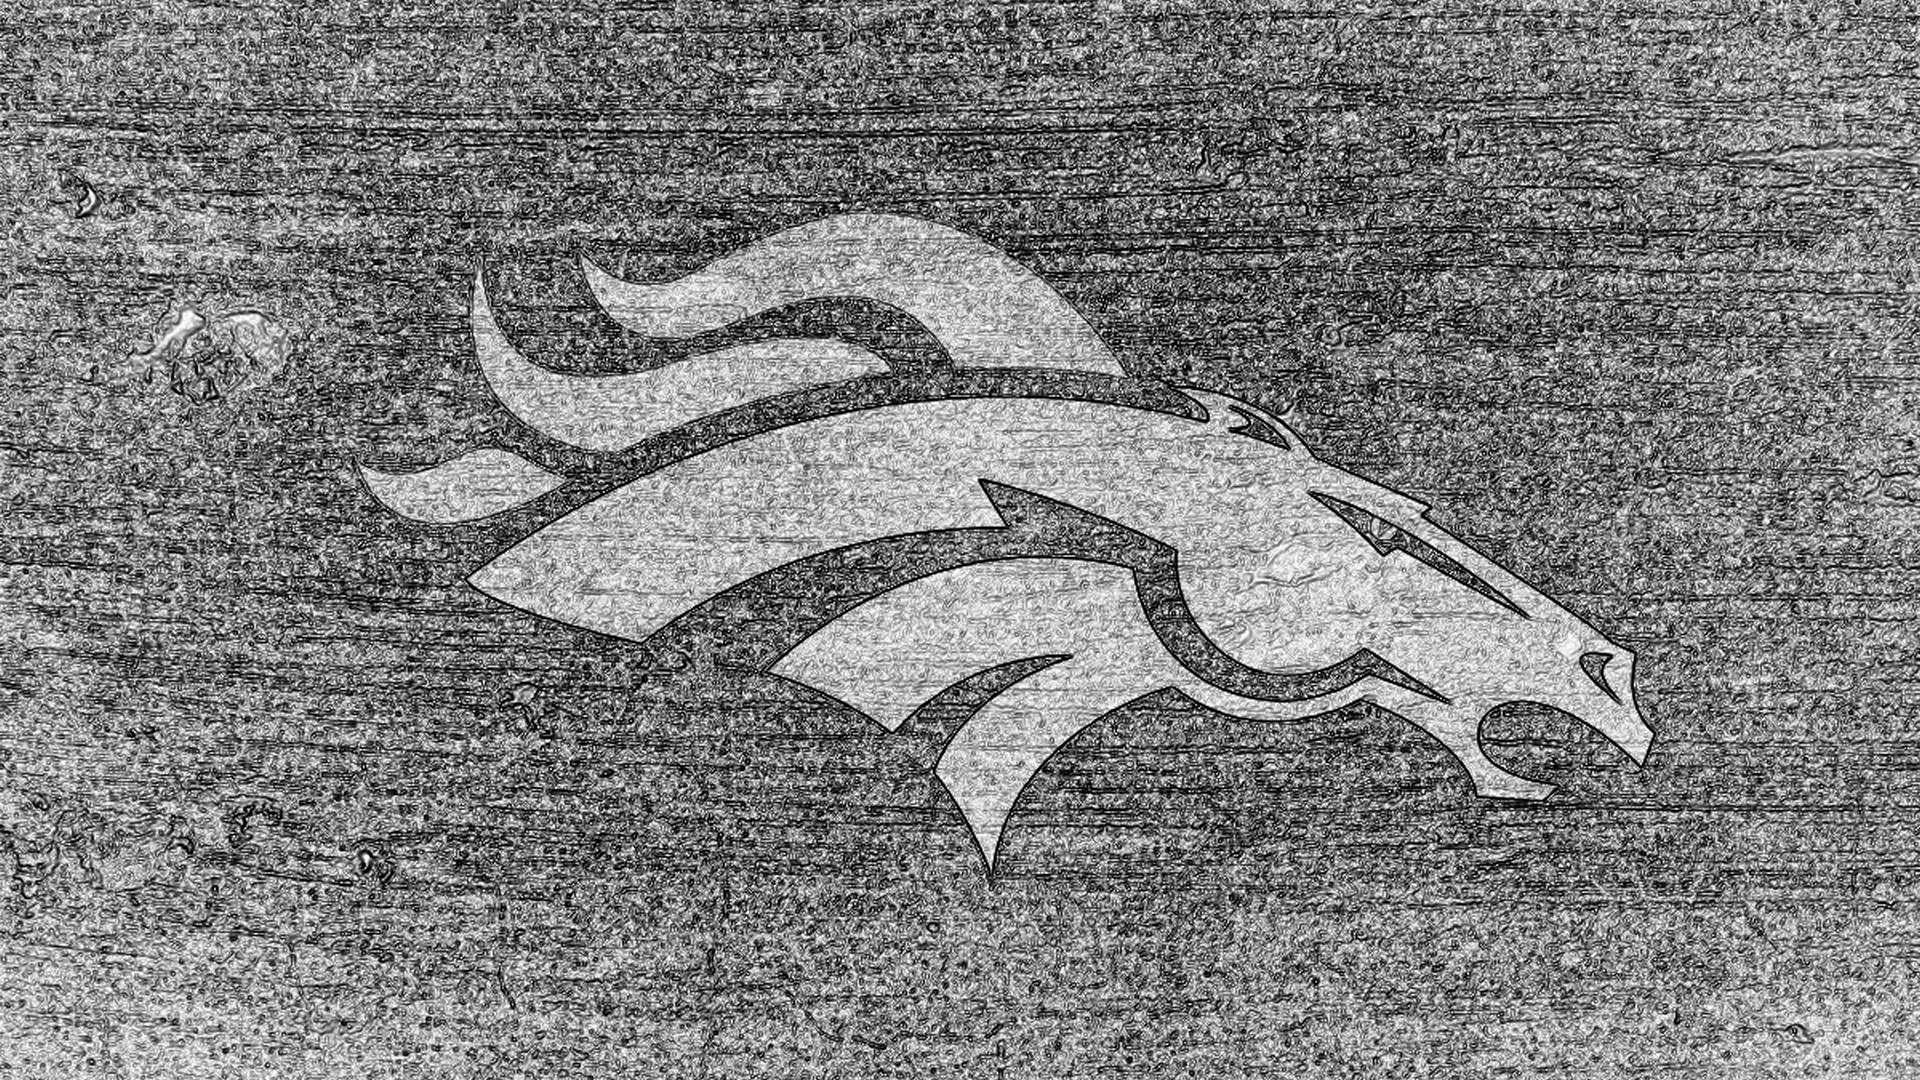 Download free HTC Inspire 4G denver broncos wallpapers – by .